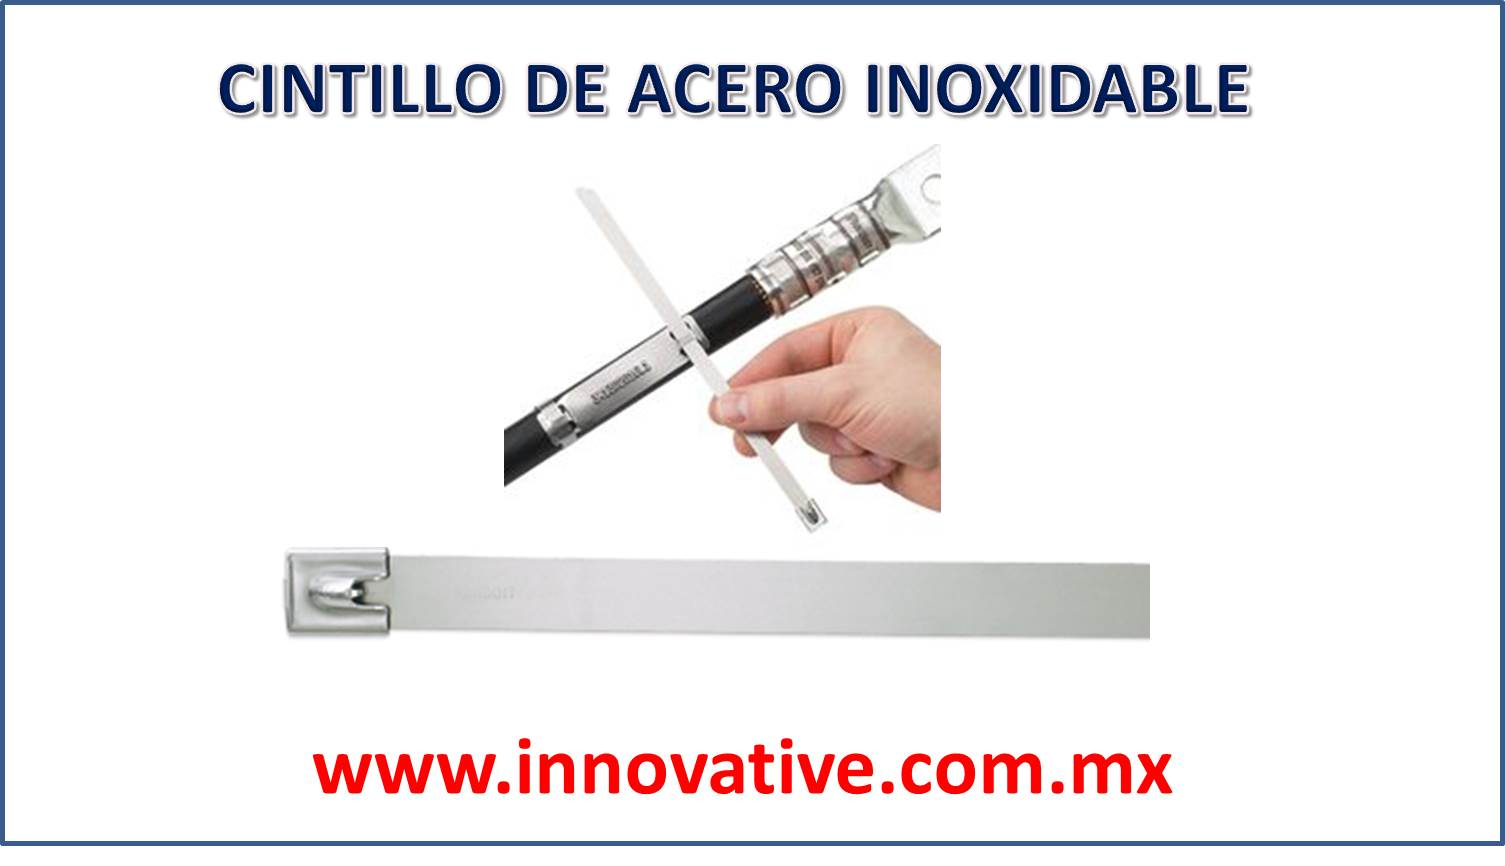 Cintillo de acero inoxidable for Toalleros de acero inoxidable